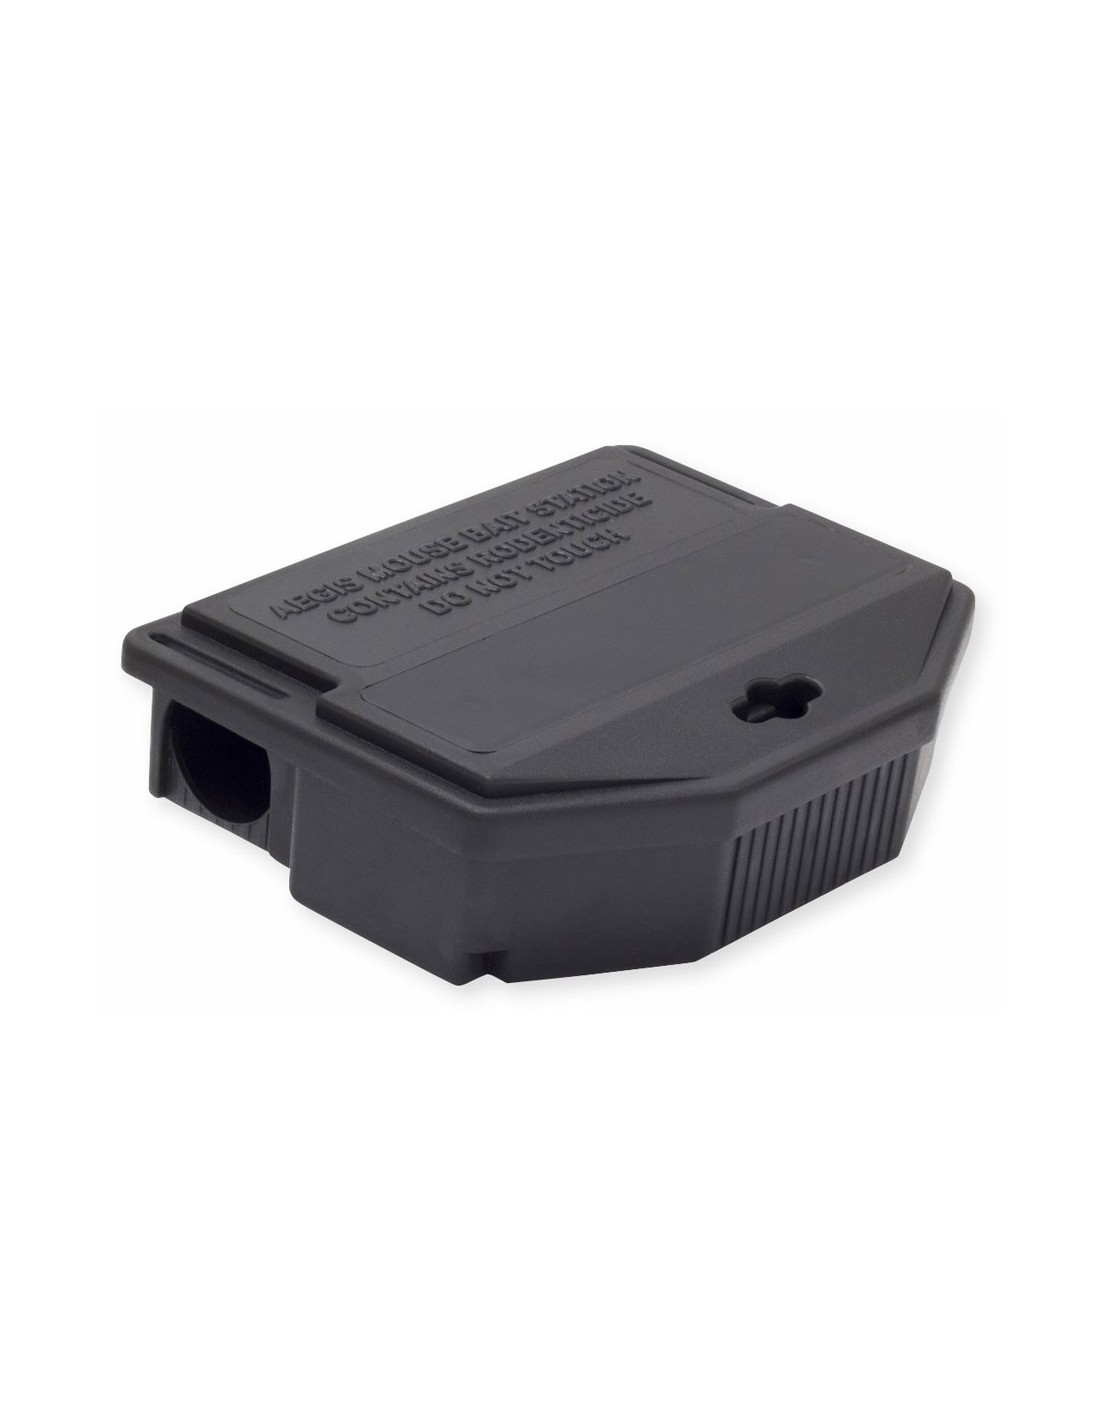 Aegis Tamper Resistant Mouse Feeding Station Questions & Answers